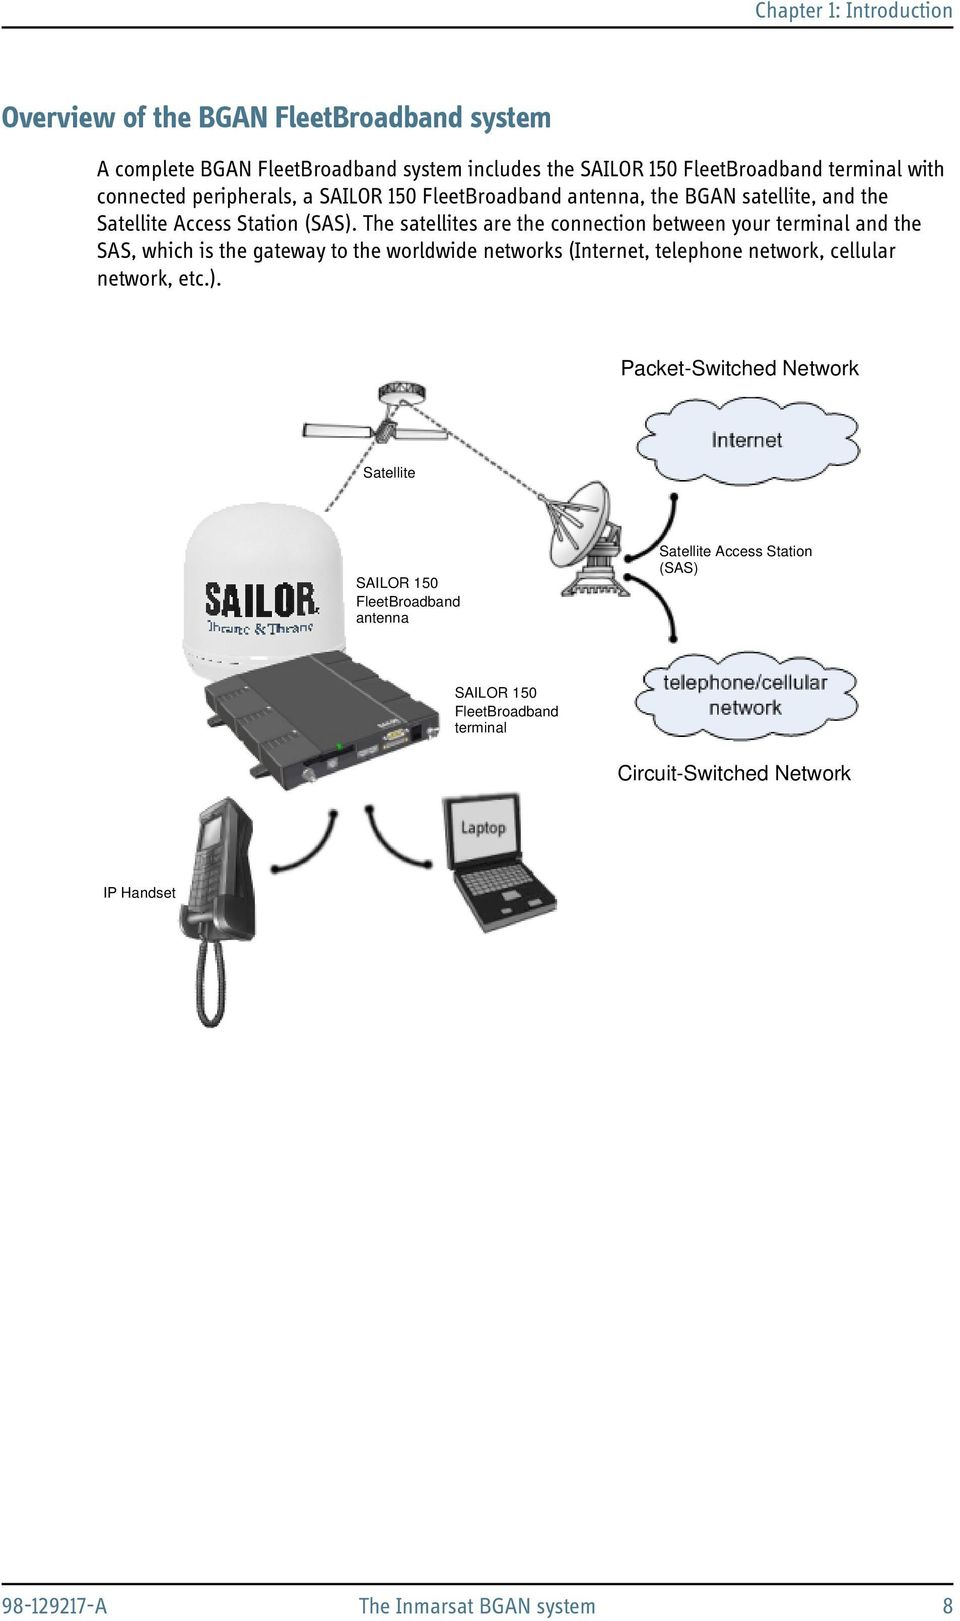 The satellites are the connection between your terminal and the SAS, which is the gateway to the worldwide networks (Internet, telephone network, cellular network,